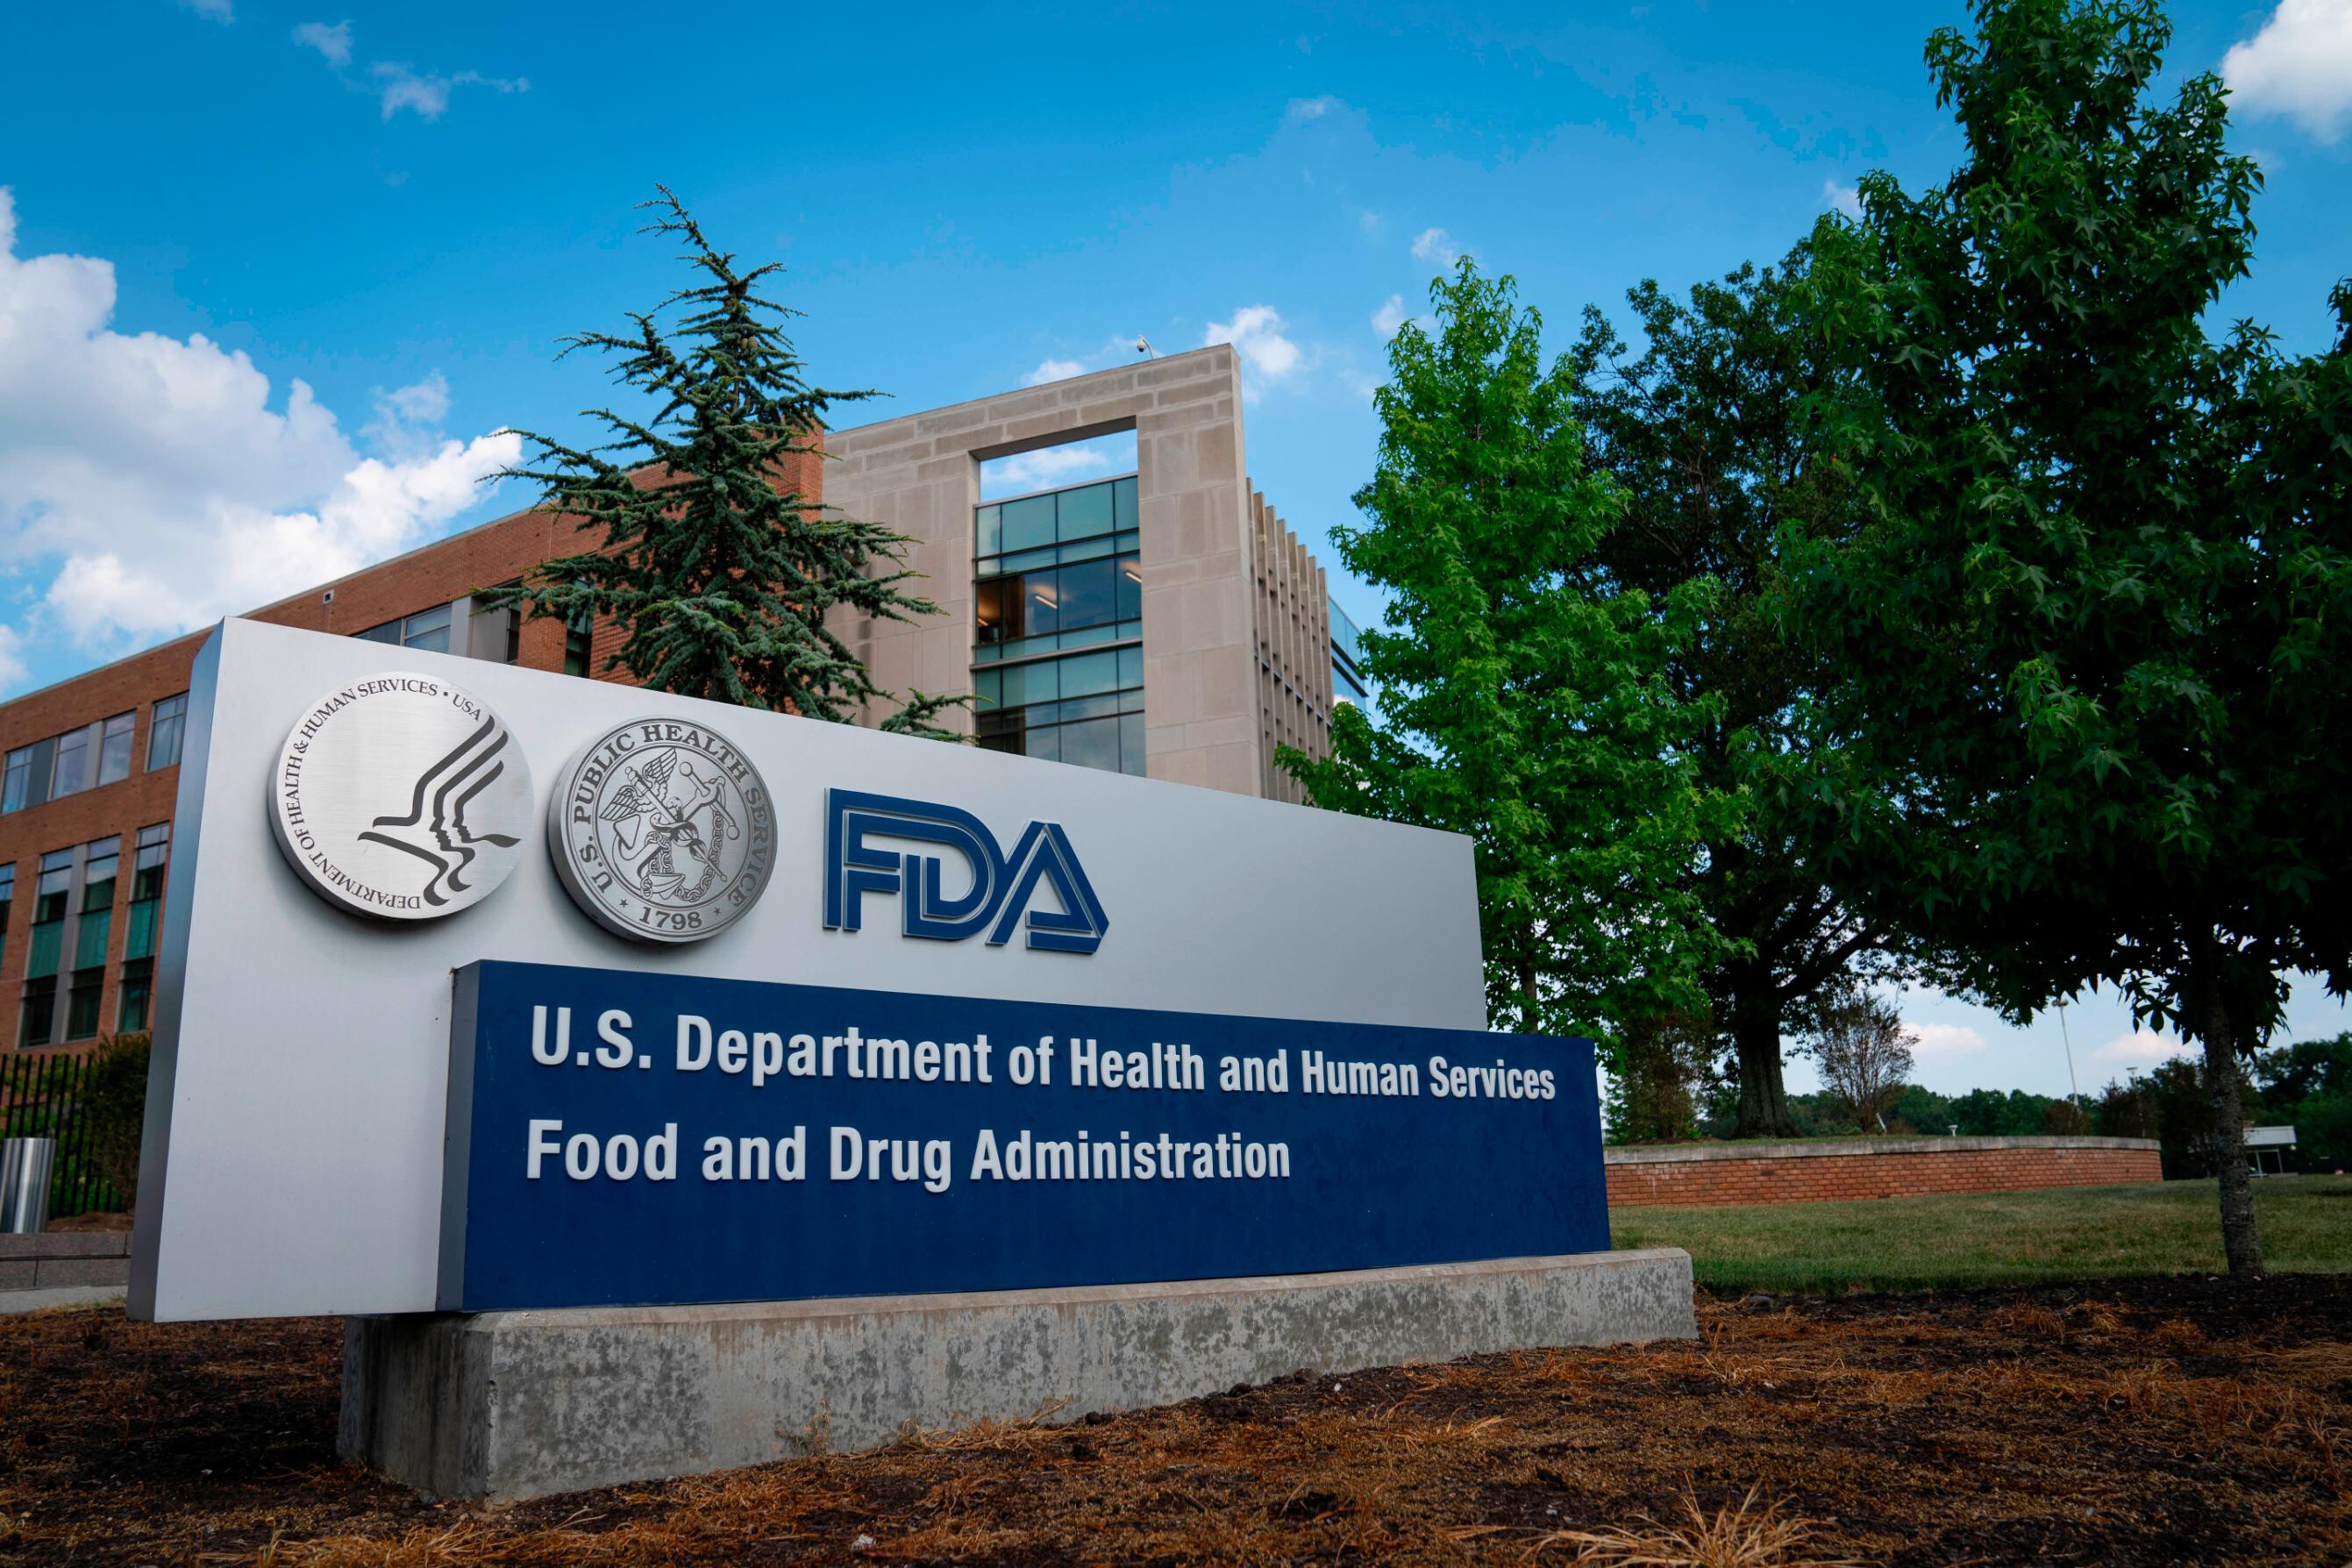 Biden says full FDA approval of a Covid-19 vaccine could come as early as the end of August